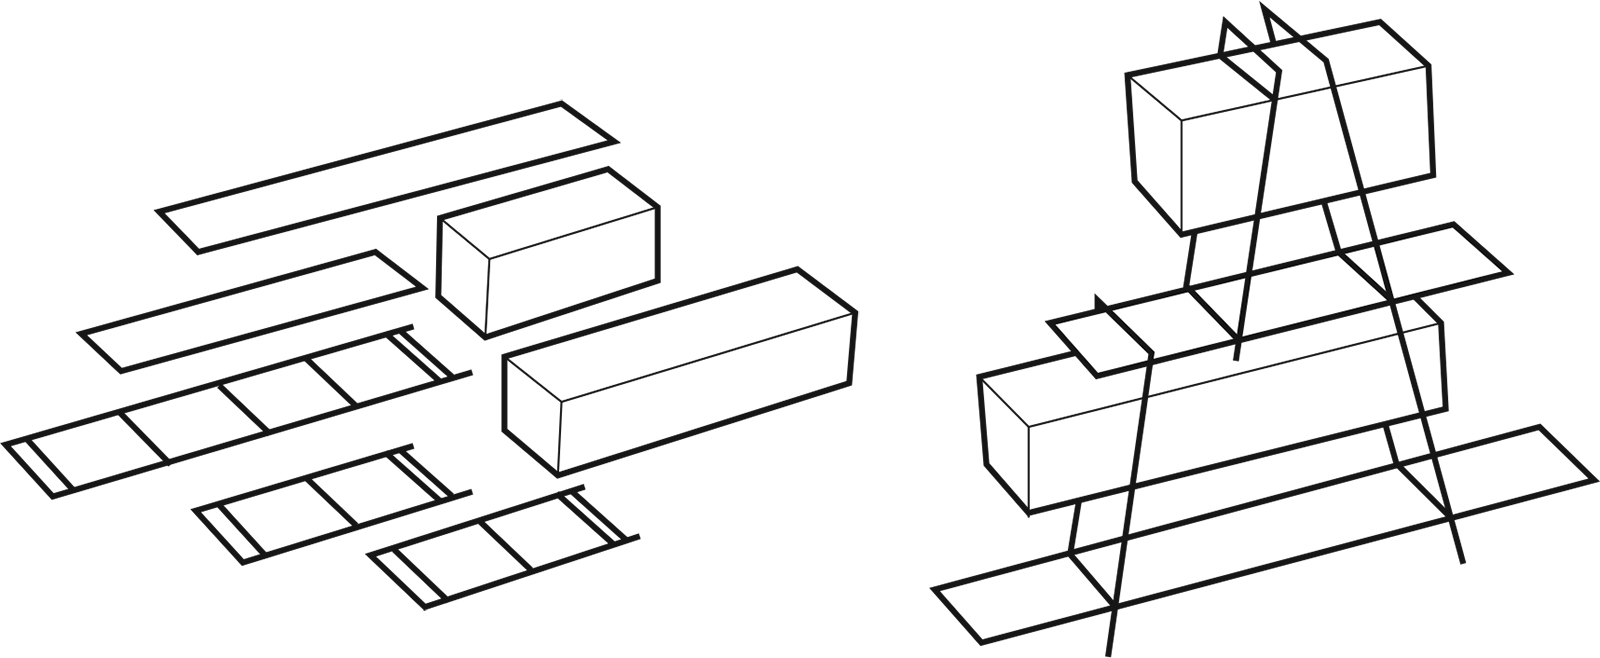 CTST Construction diagram based on shelving systems stabilized by combining frames with solid volumes